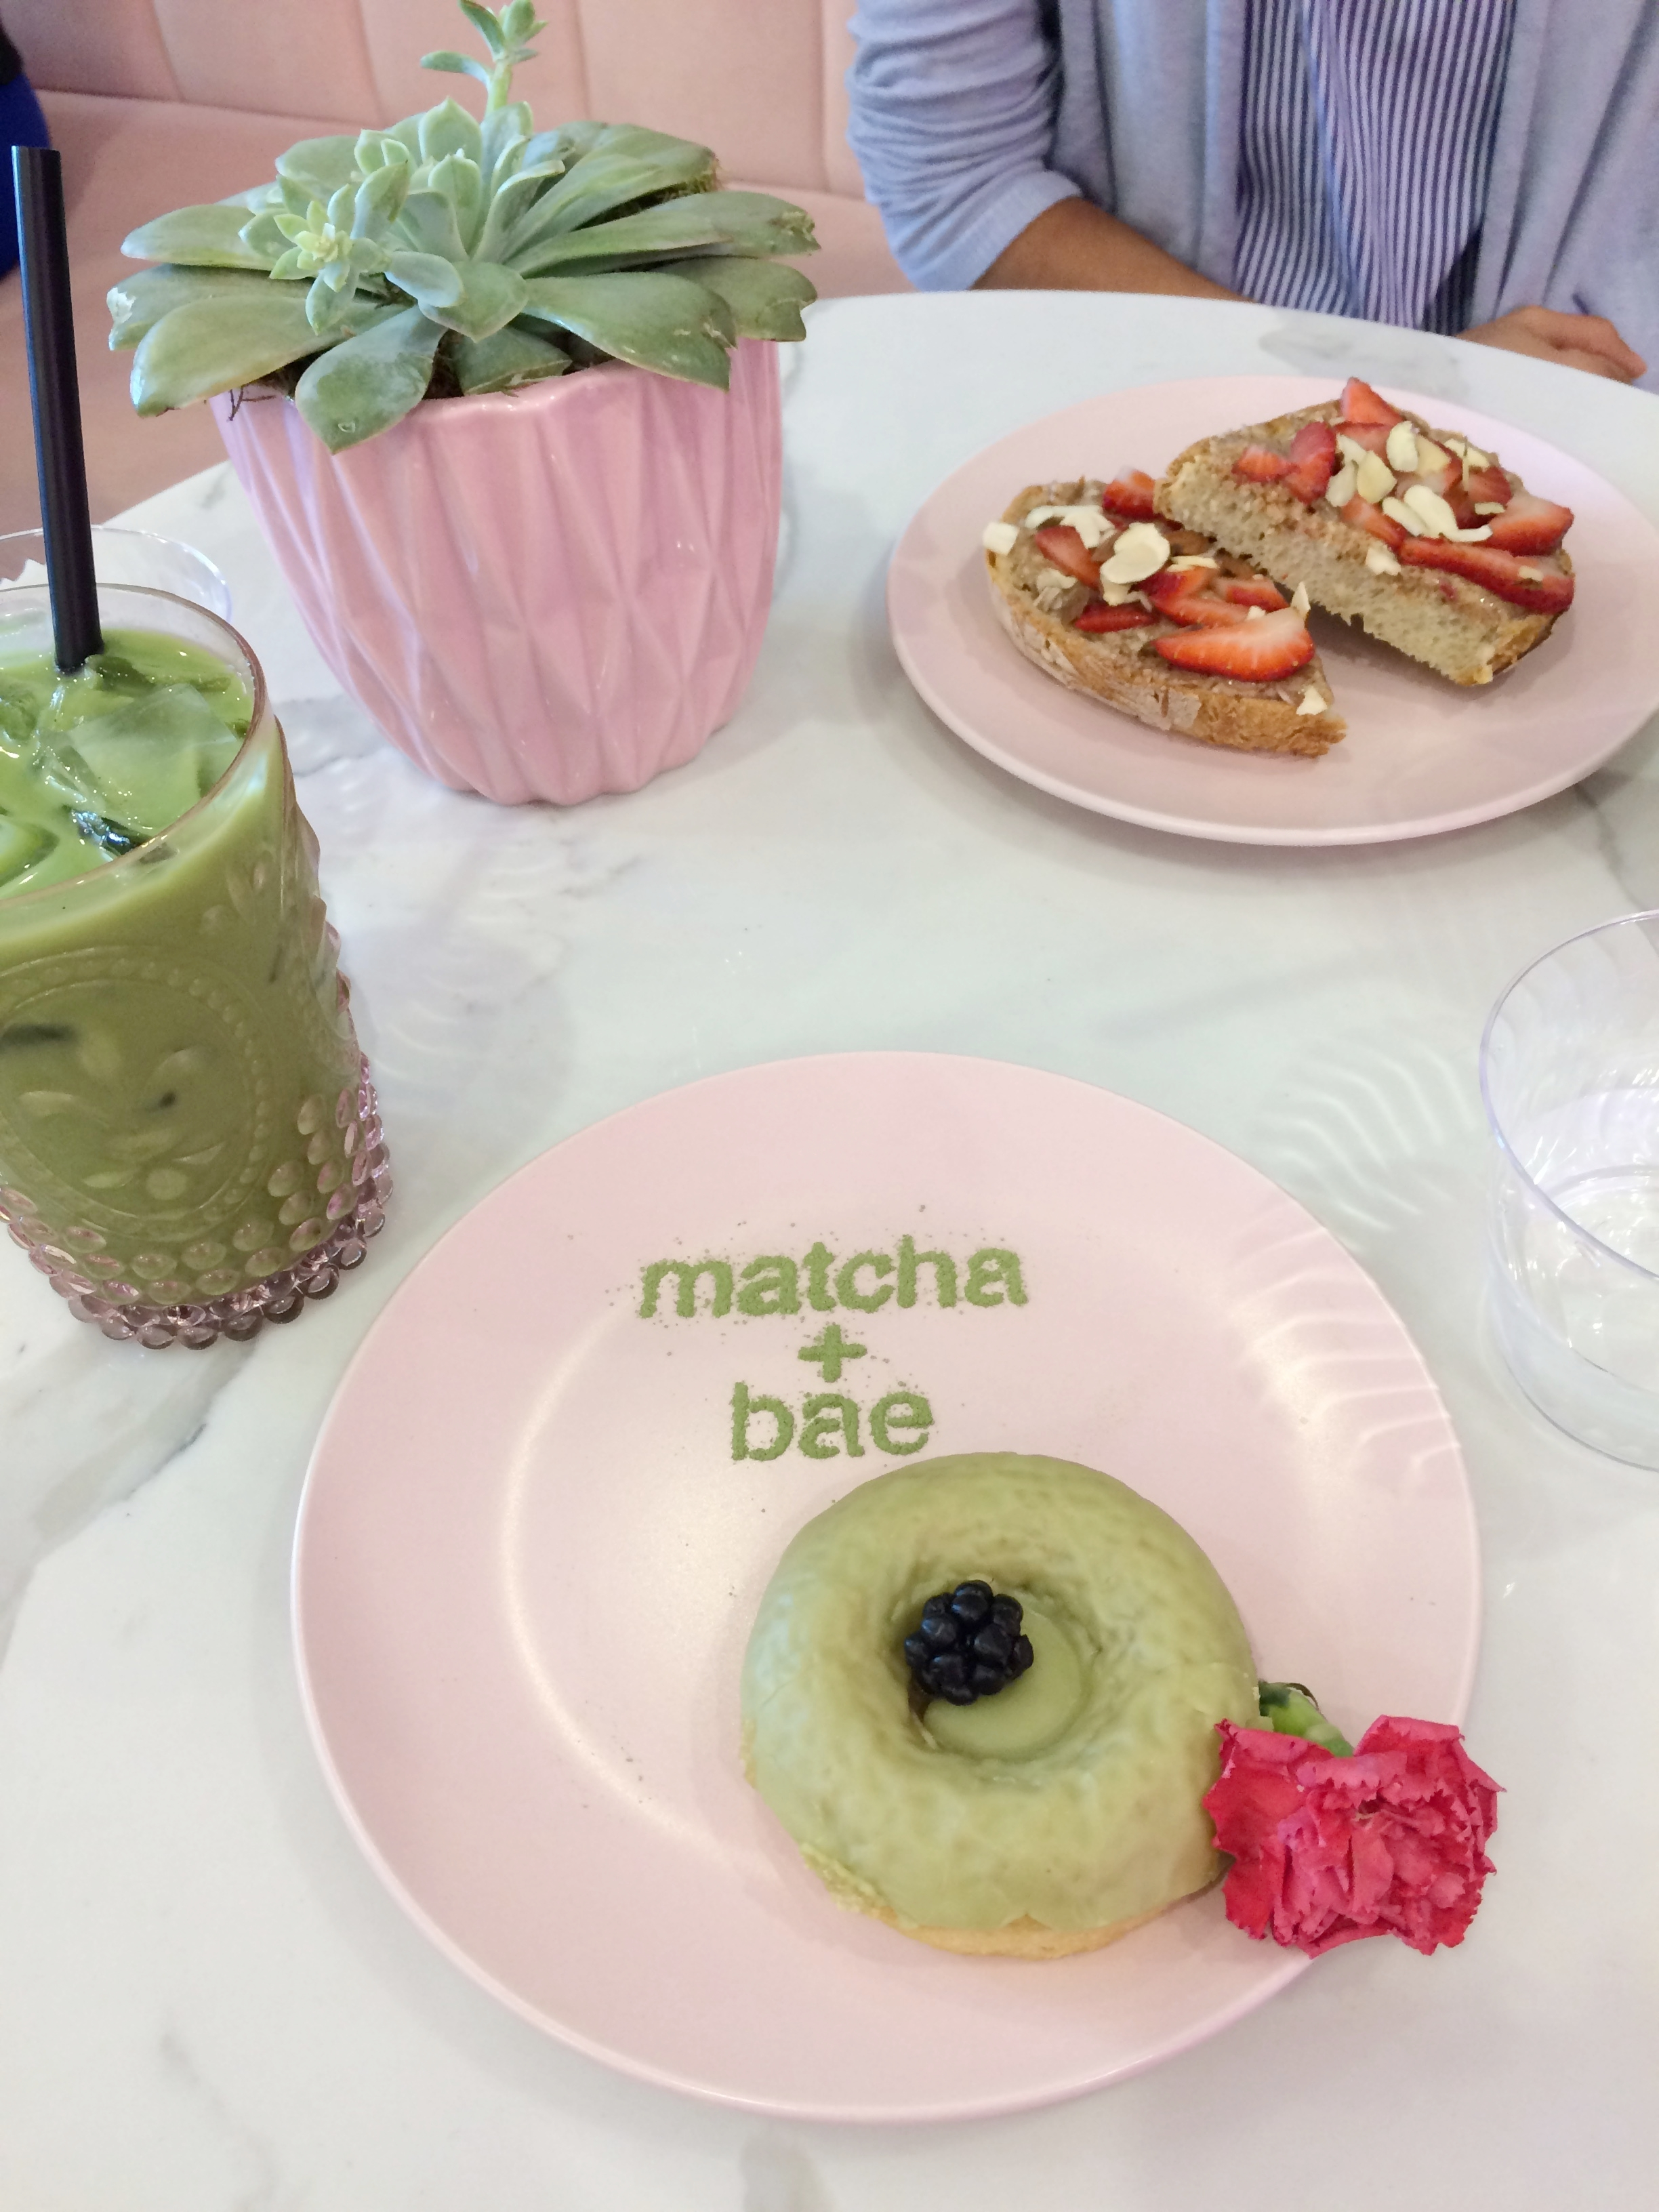 If you live in San Diego, visit Holly Matcha, they have everything Matcha.From Matcha lattes to Matcha donuts.